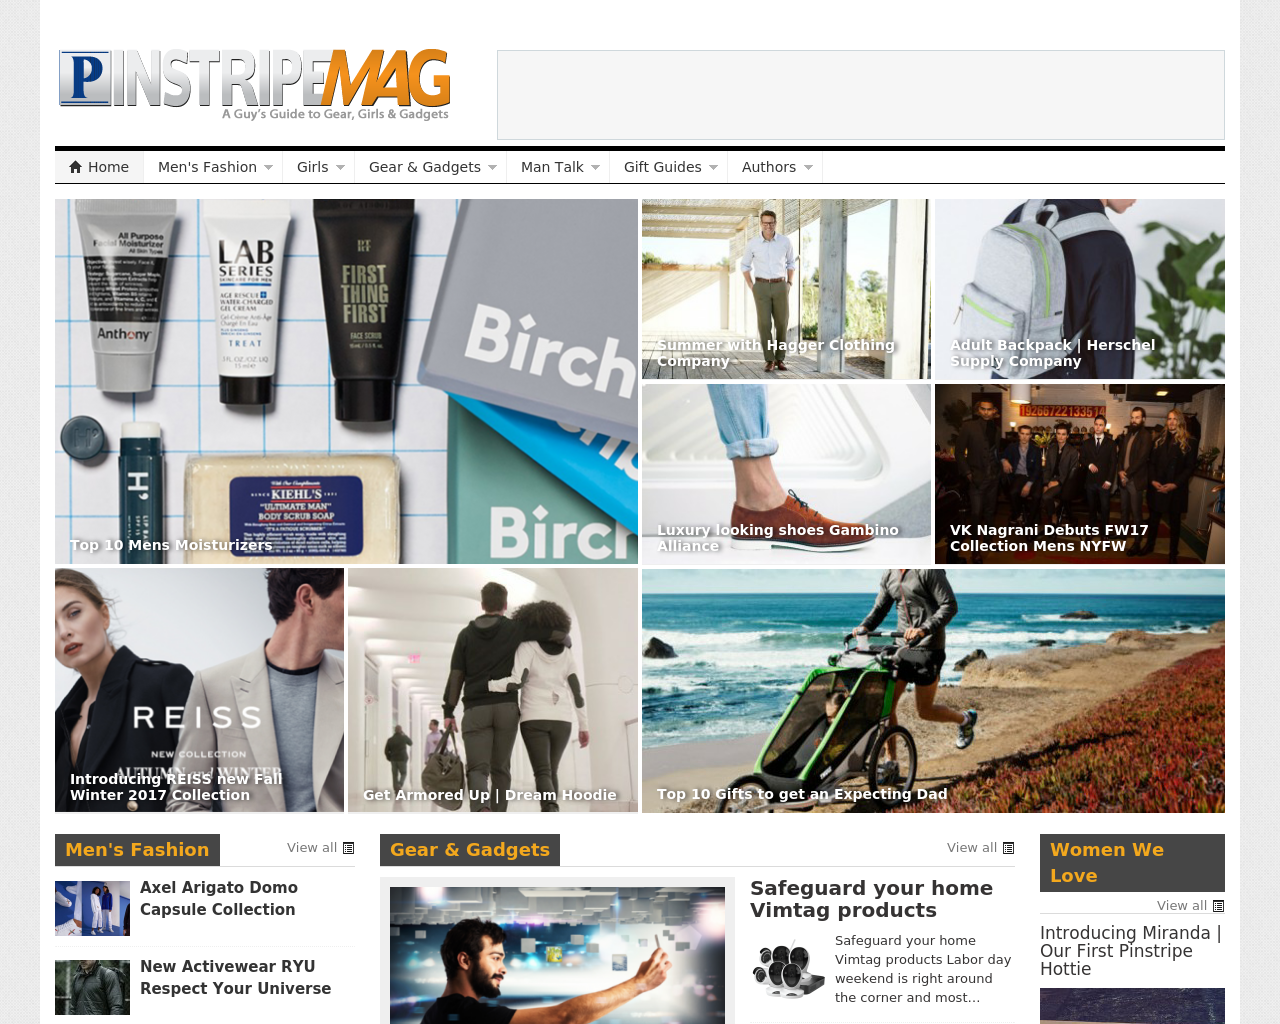 Pinstripe-Magazine-Advertising-Reviews-Pricing